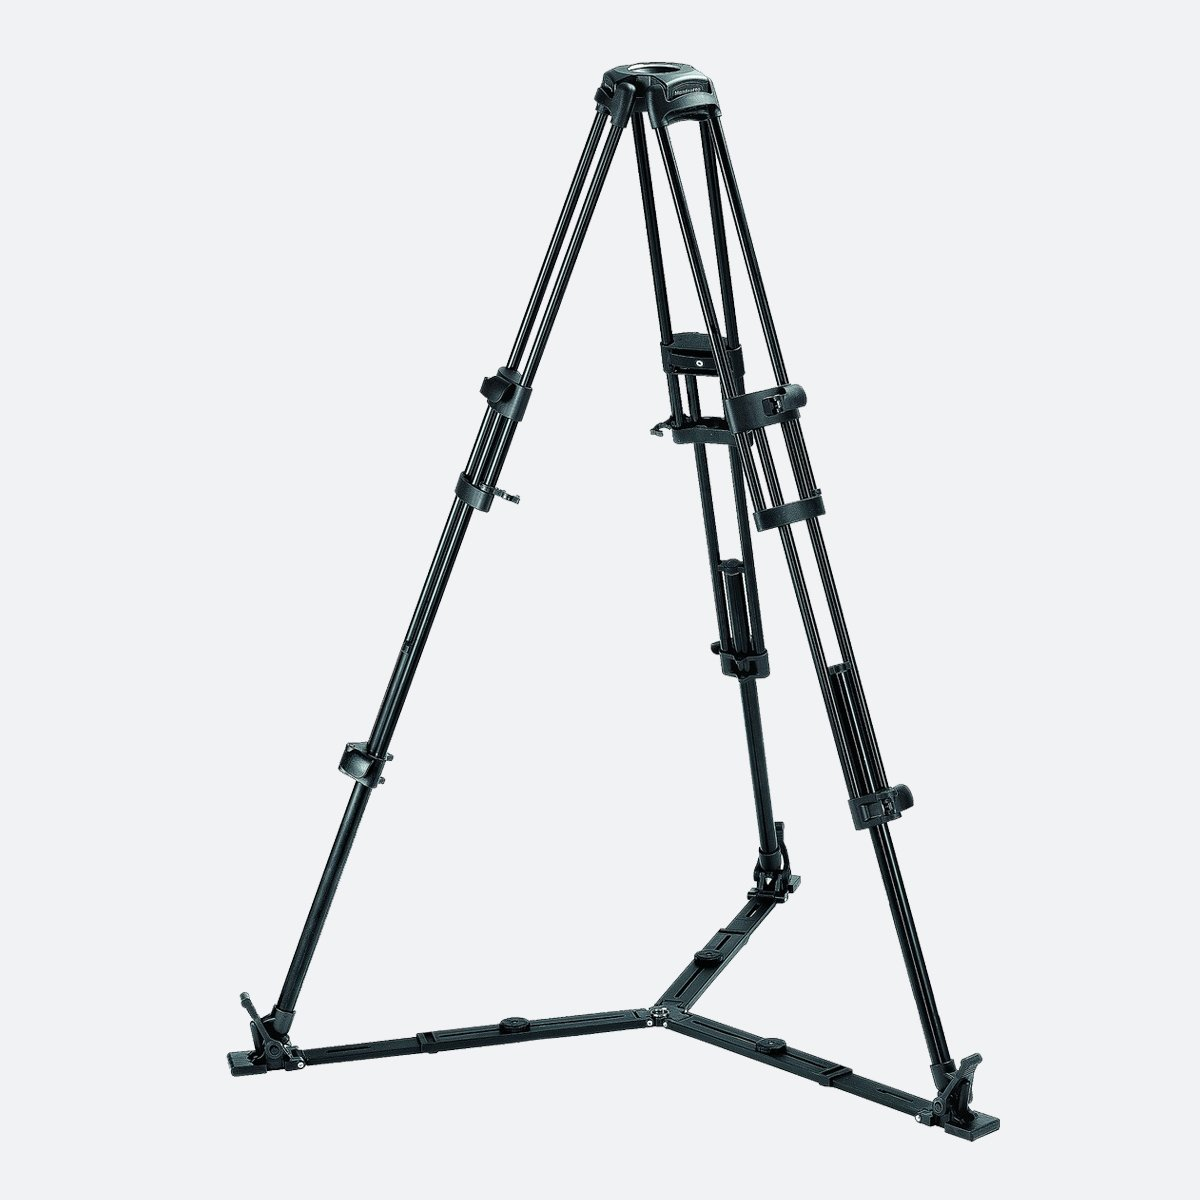 Manfrotto 525MVB Pro Lightweight Video Tripod legs